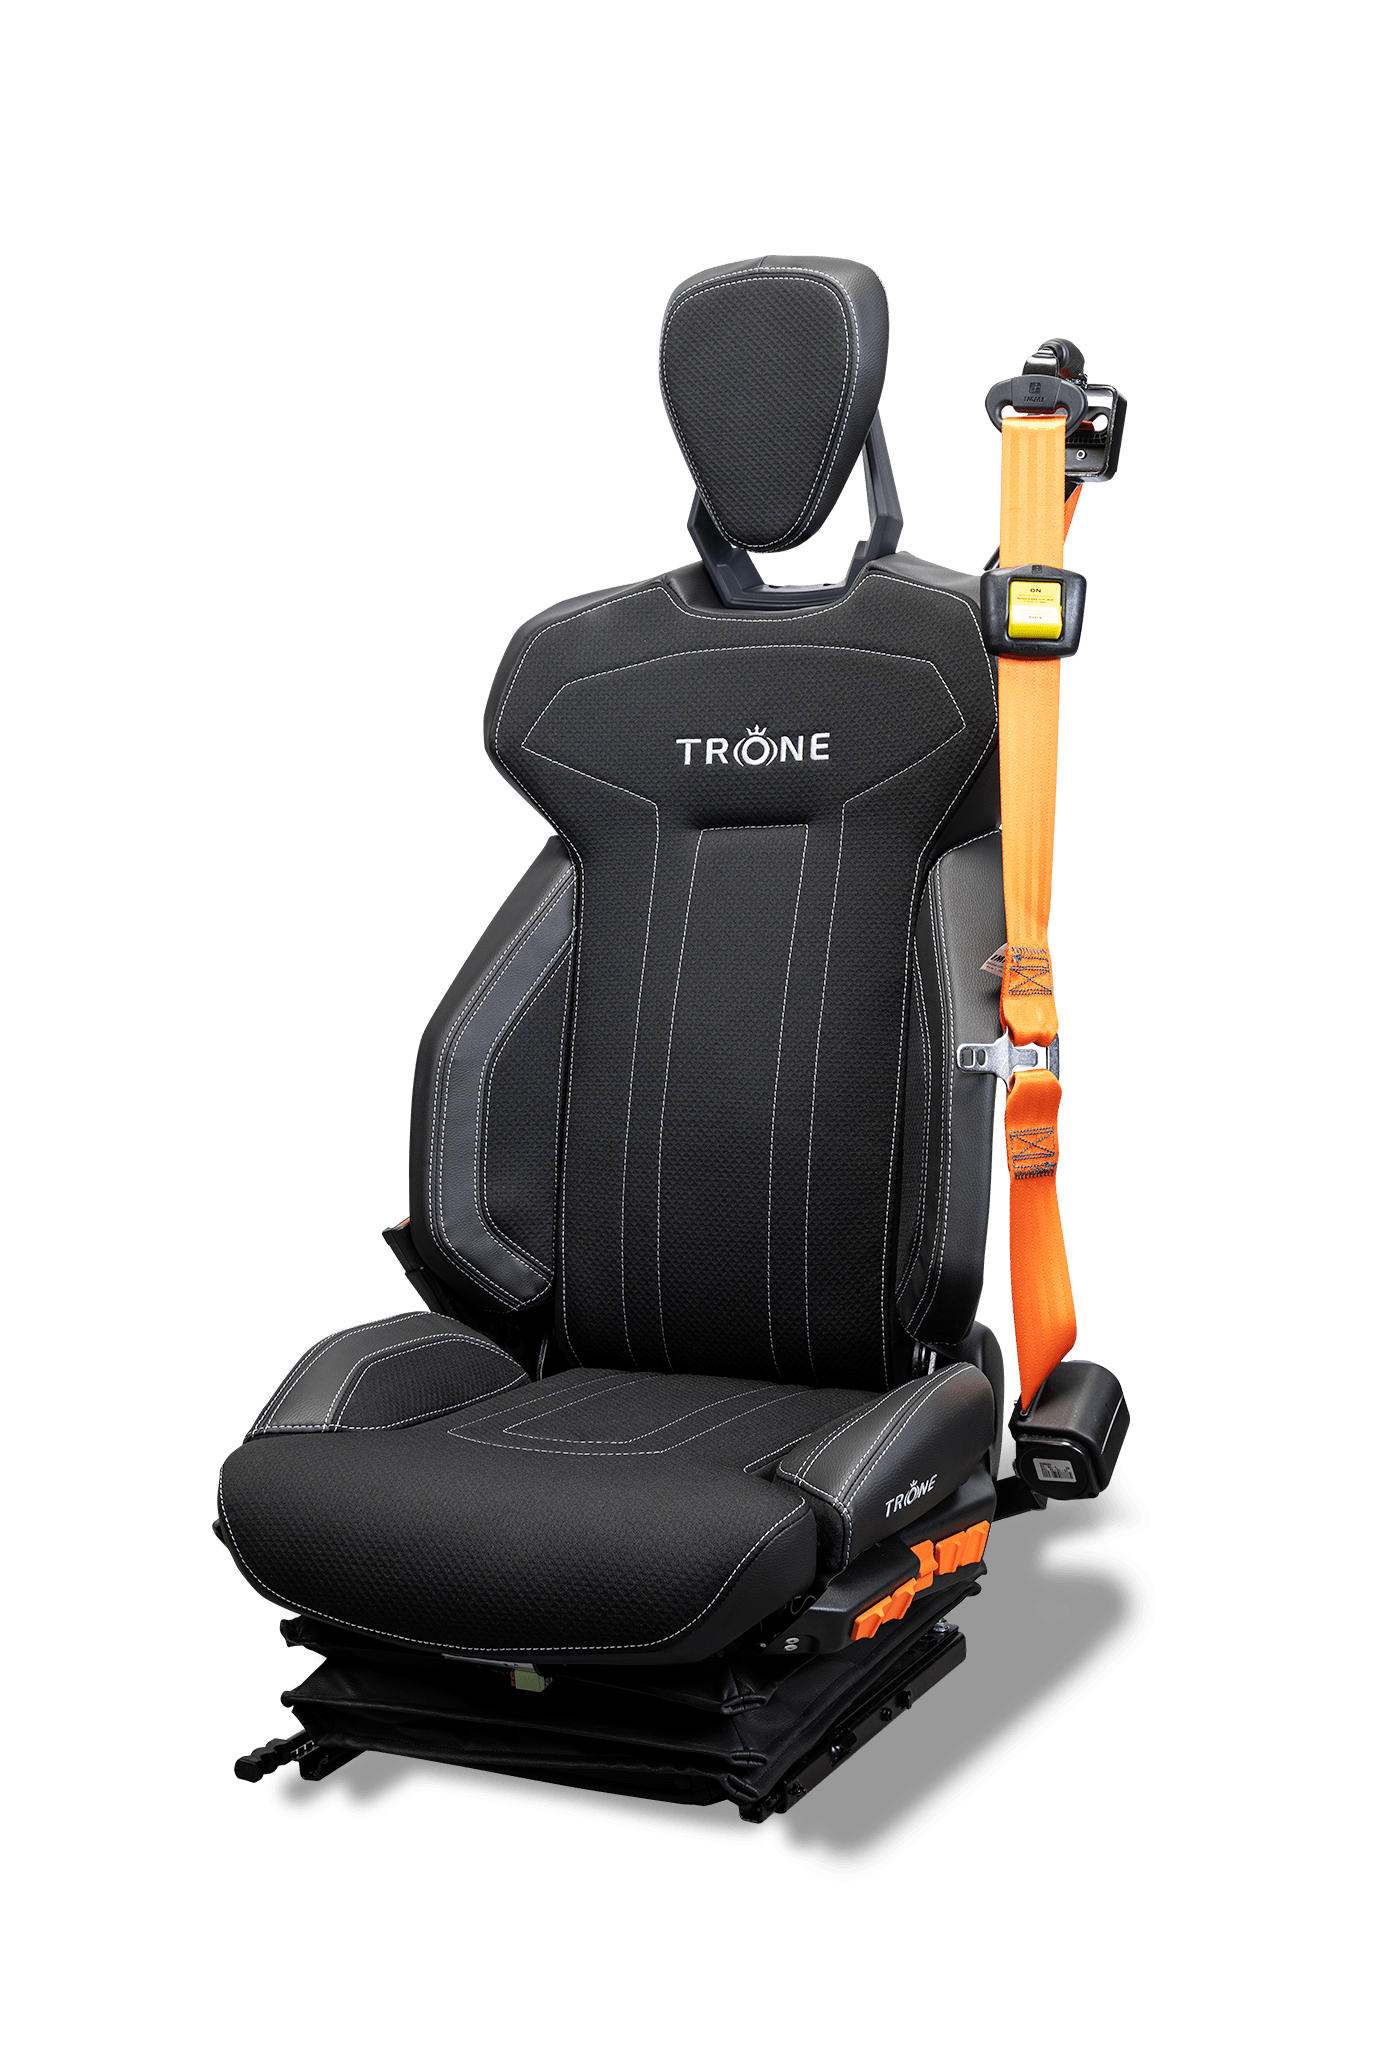 TRONE-HB-LUCHTVERING-EASYGRIP-SAFETYBELT